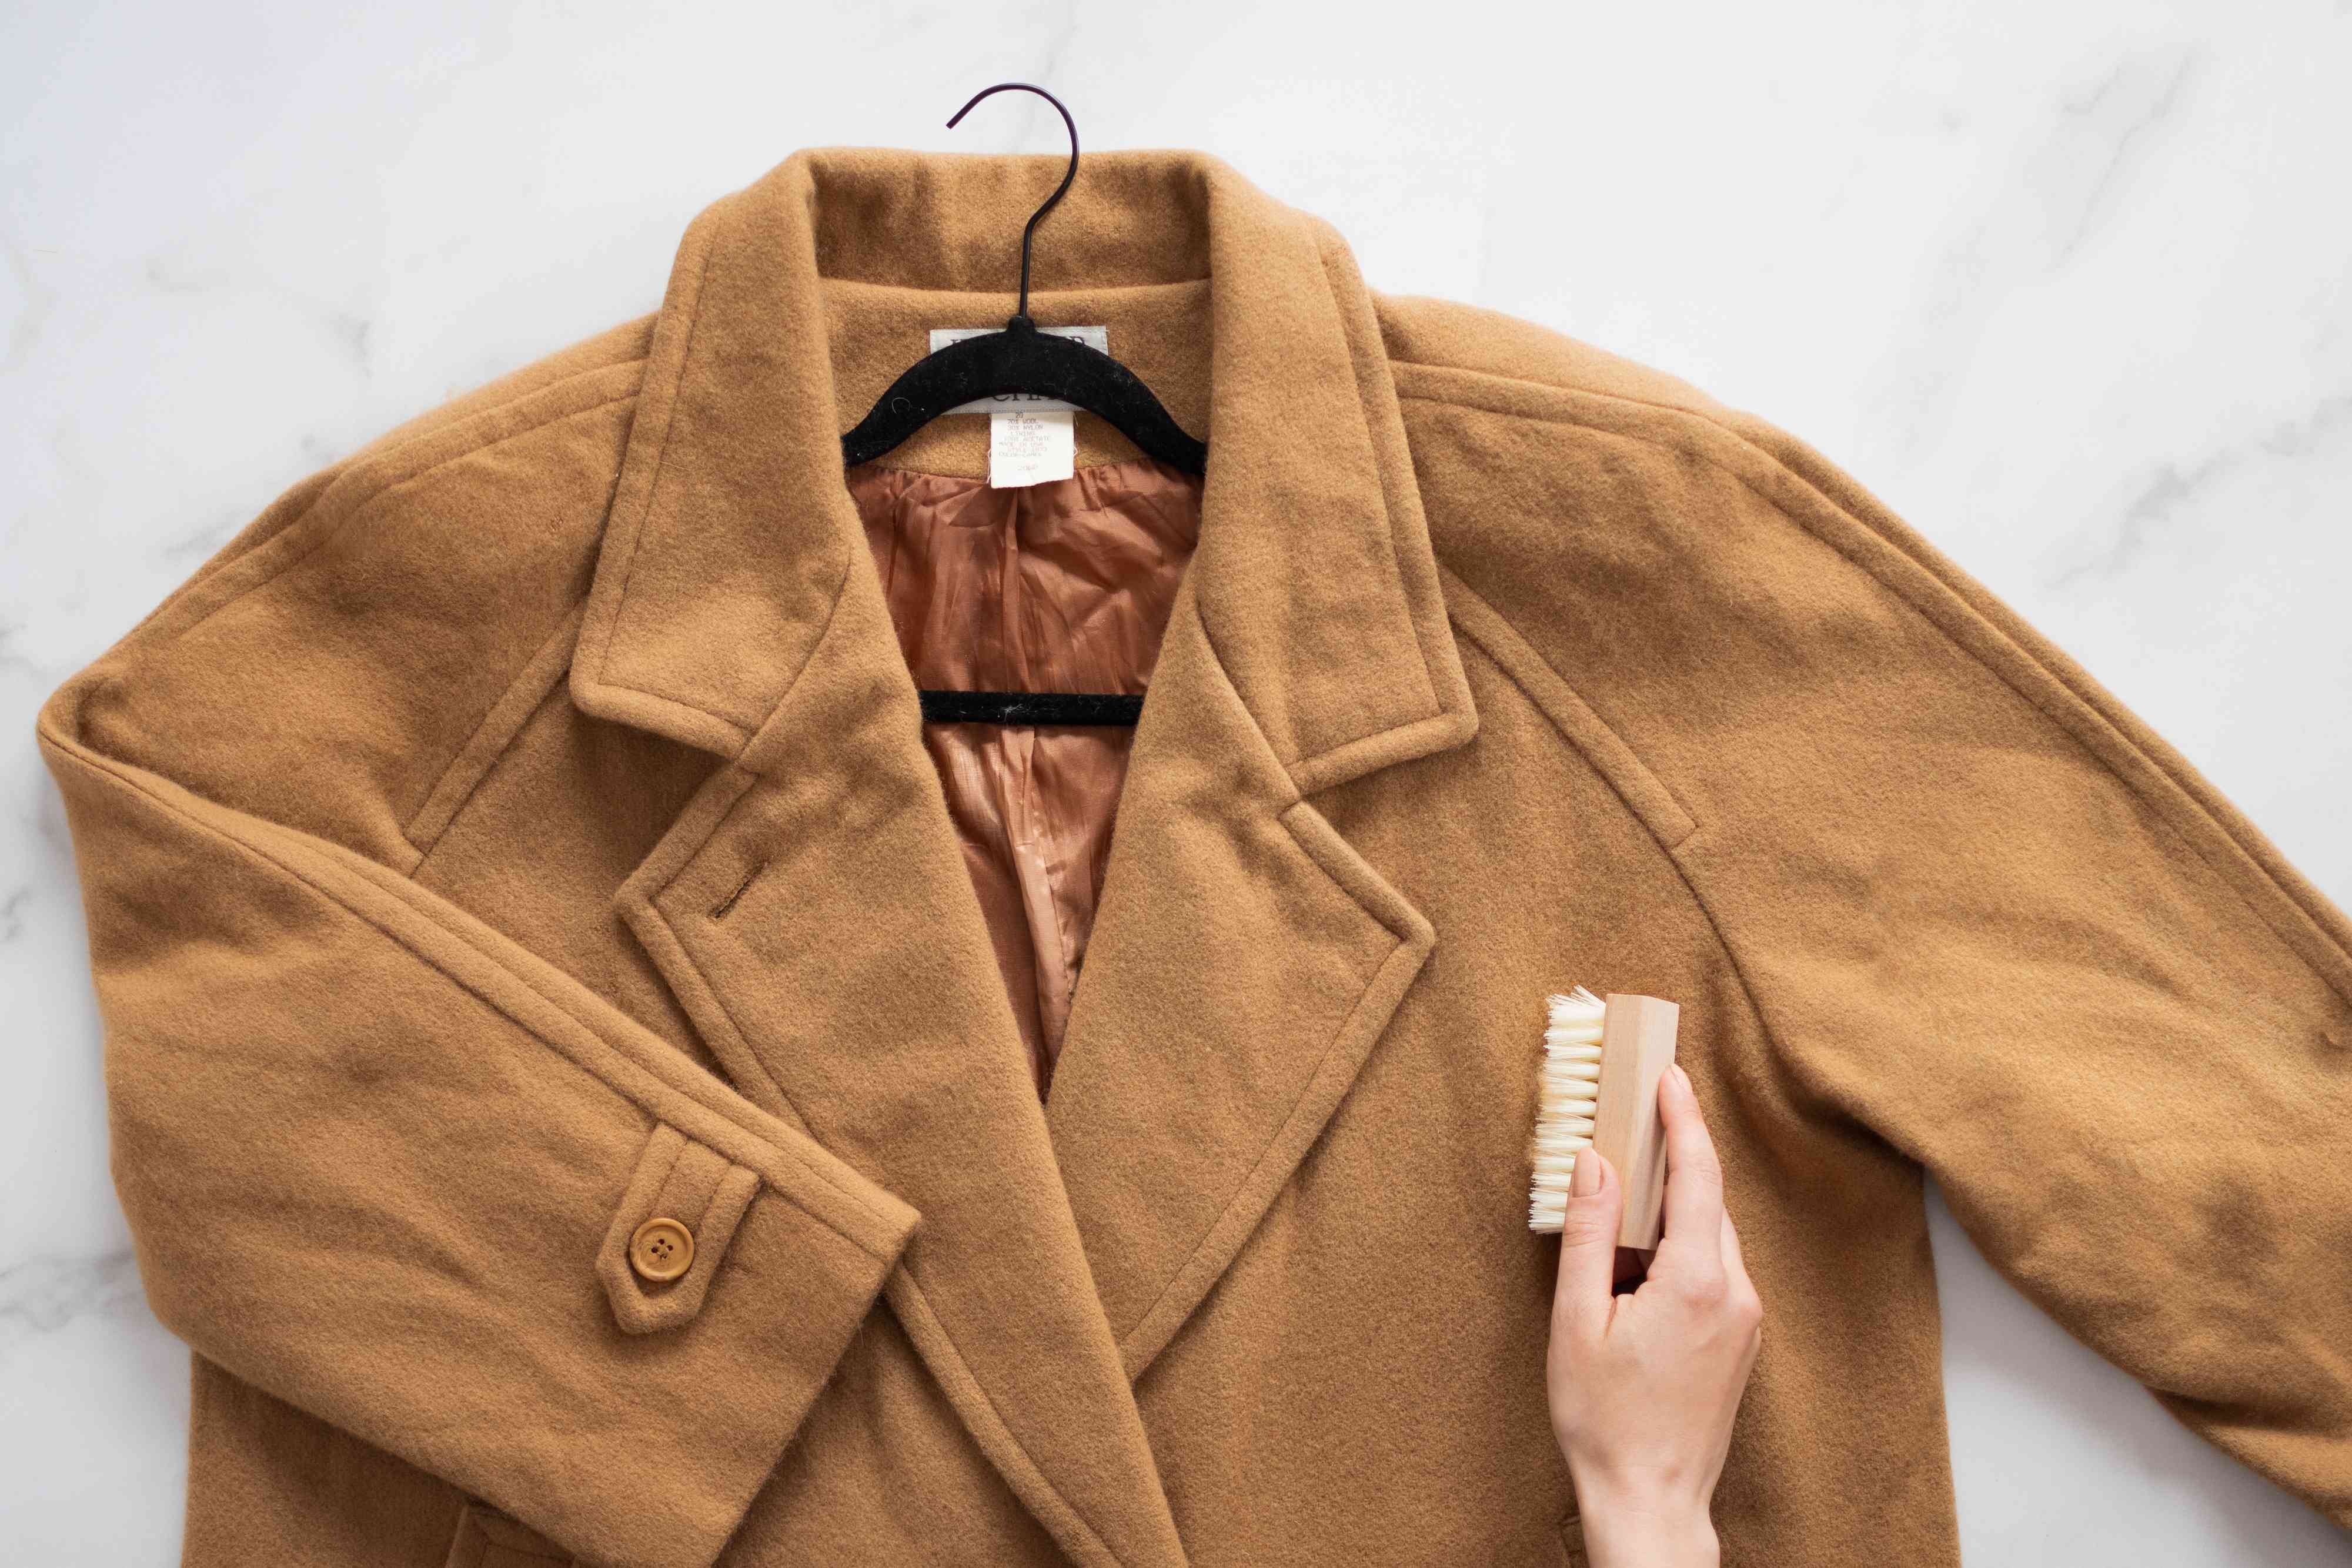 Tan wool coat on black hanger brushed with clothes brush to loosen soil